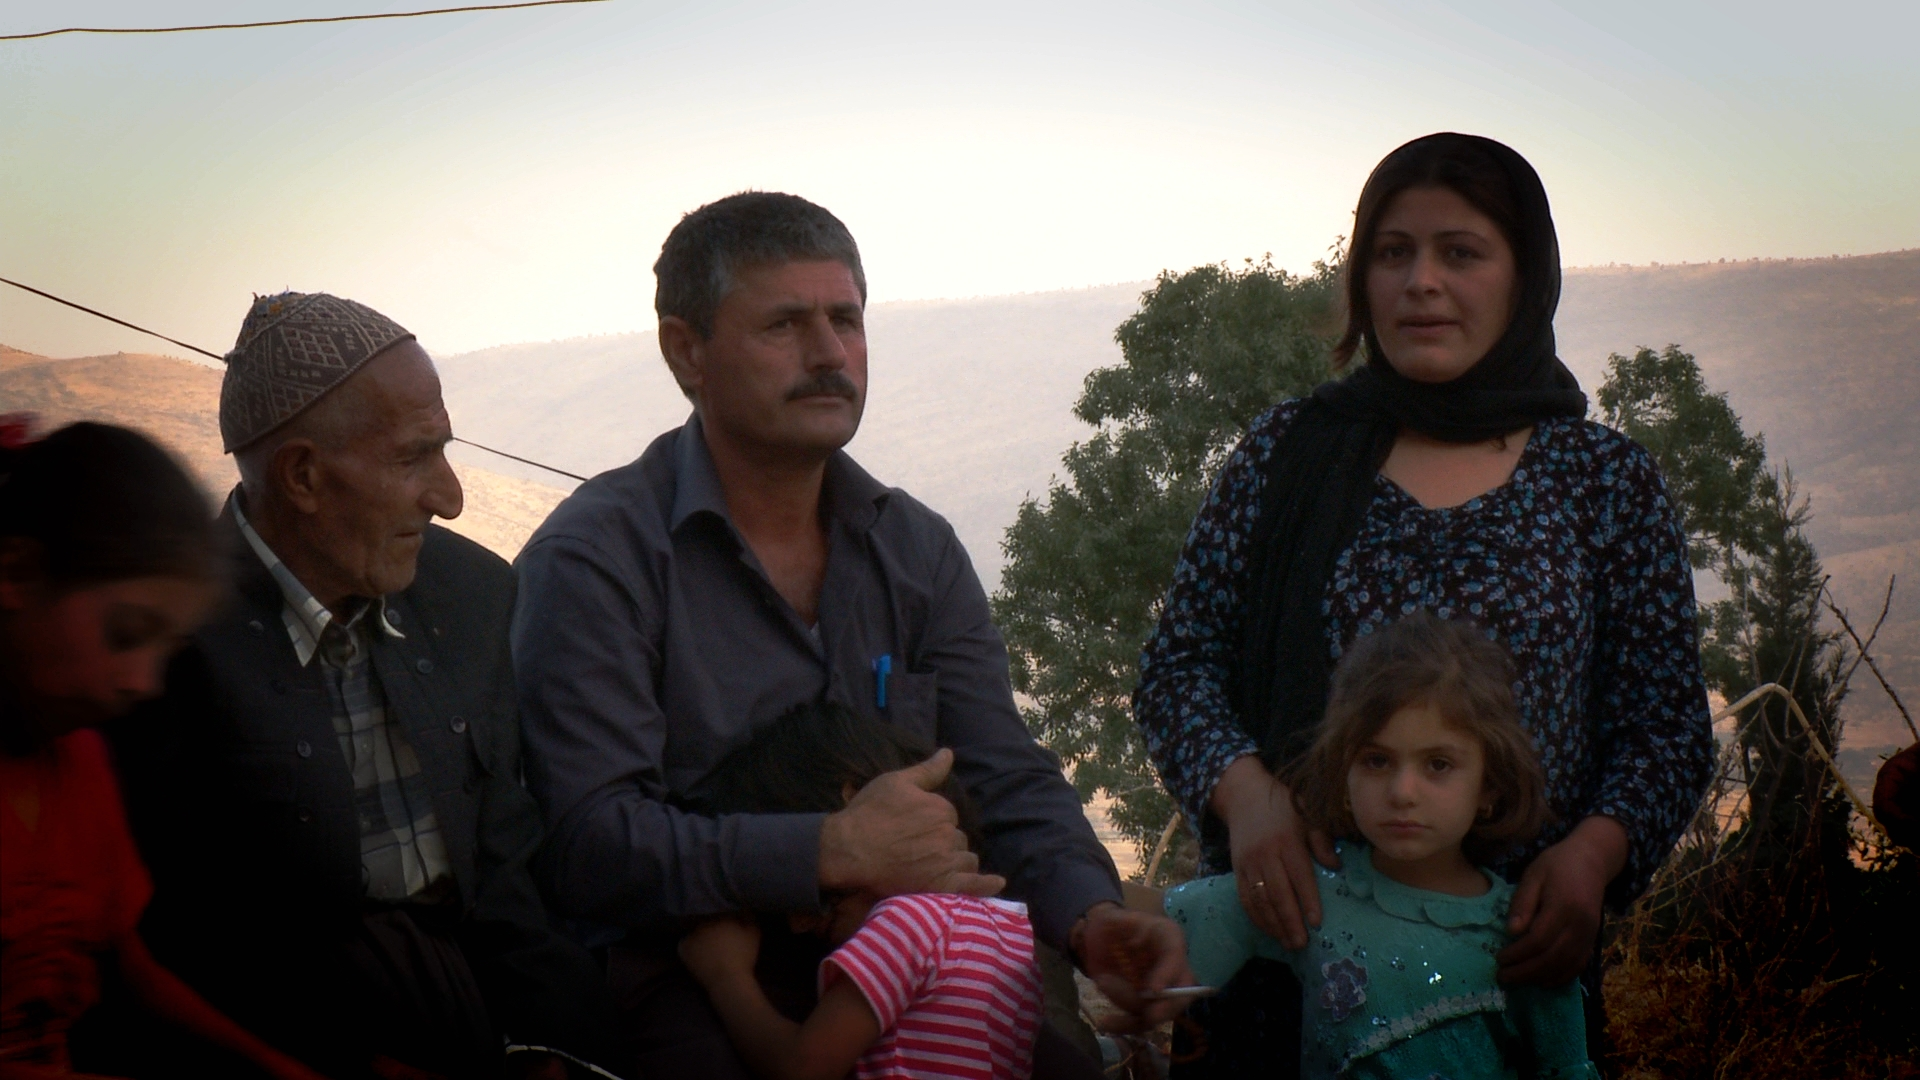 When Sheikh Wasan village was attacked by the Iraqi army, NAJIBA KHADIR AHMED escaped to the mountains with her children. Blinded by poison gas, she was led to safety by her sister-in-law. Her peshmerga husband, MUSTAFA RASUL HAMA AMIN, returned to find the village littered with the carcasses of dogs and cats.